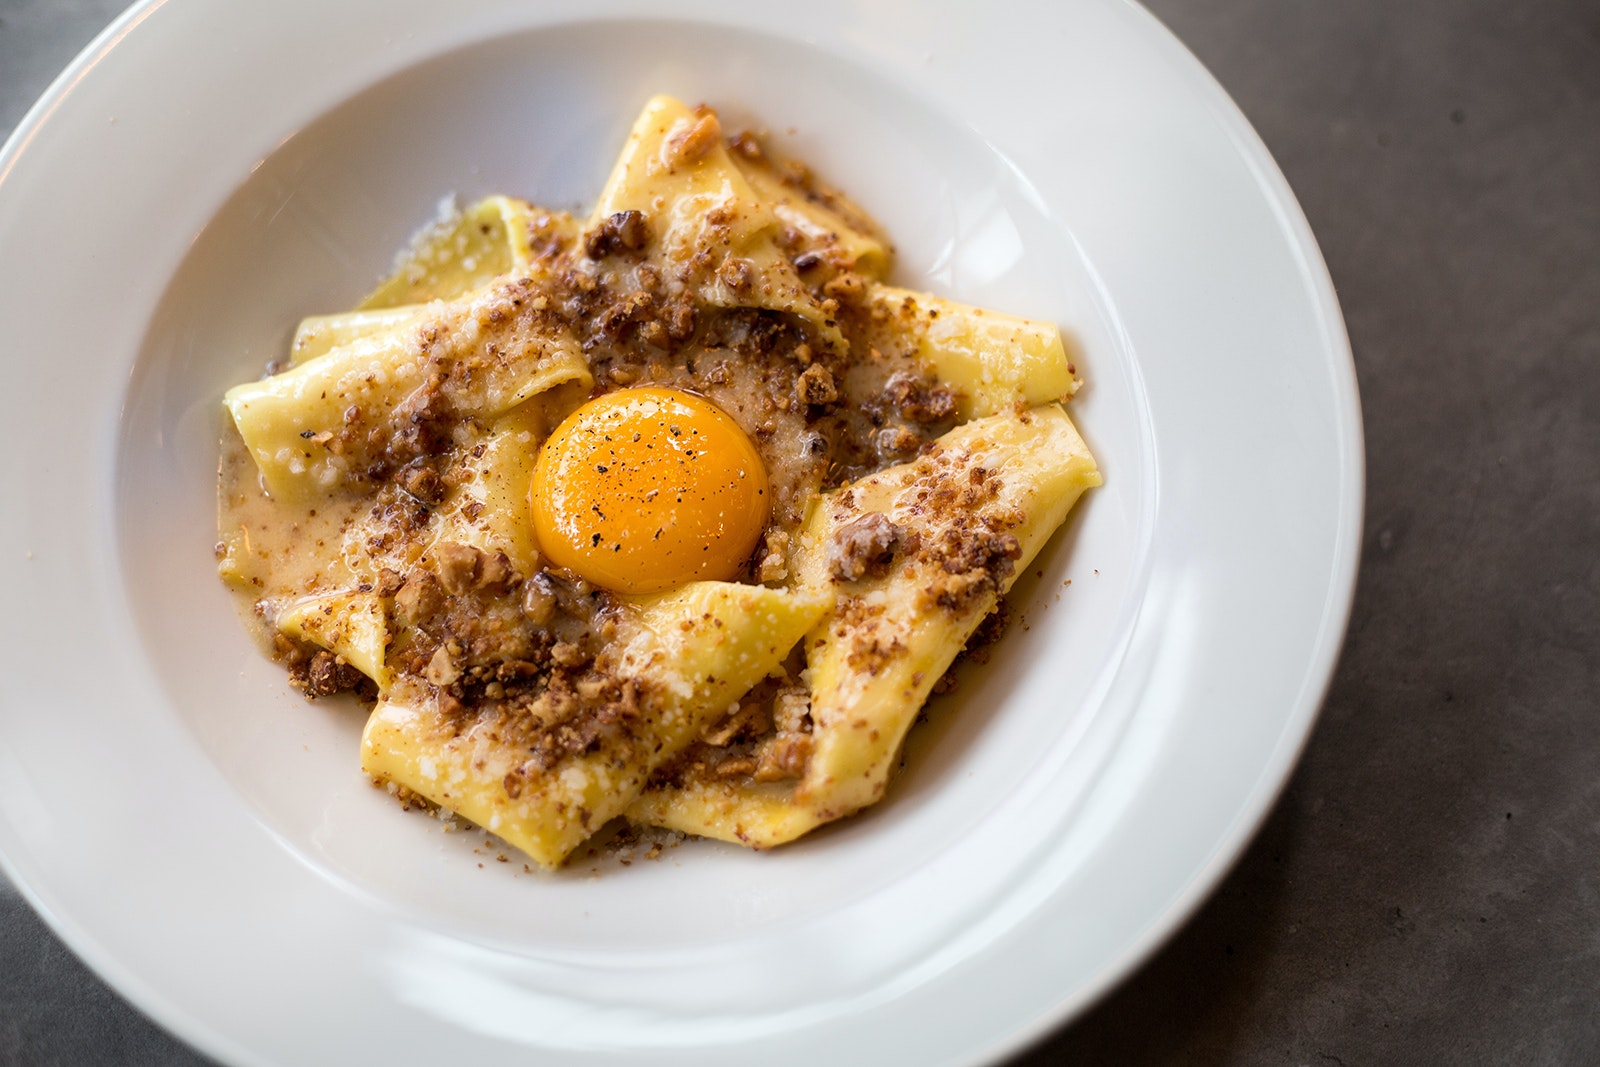 Pasta is the star of the menu at the West End's Bancone.